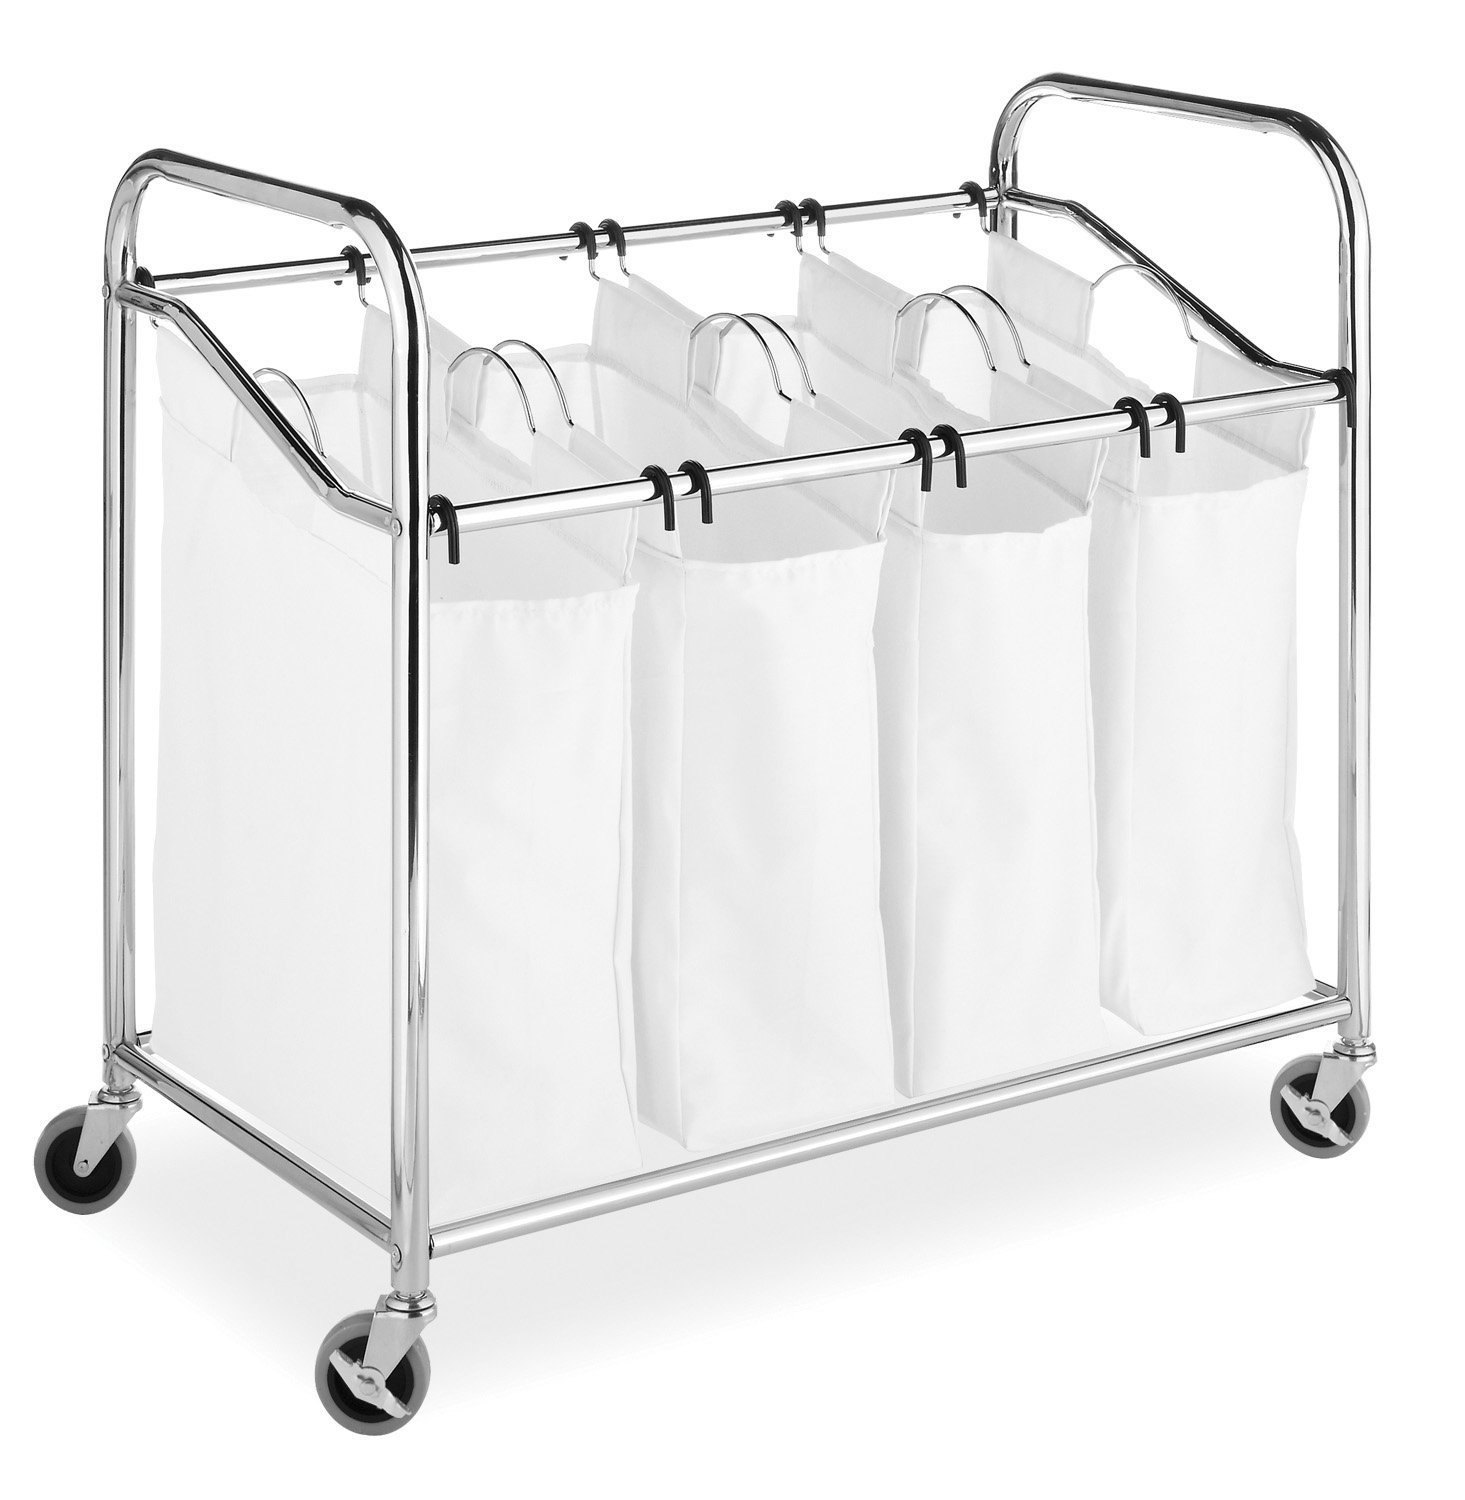 Whitmor 4-Section Laundry Sorter with Wheels Chrome & White - Traveller Location